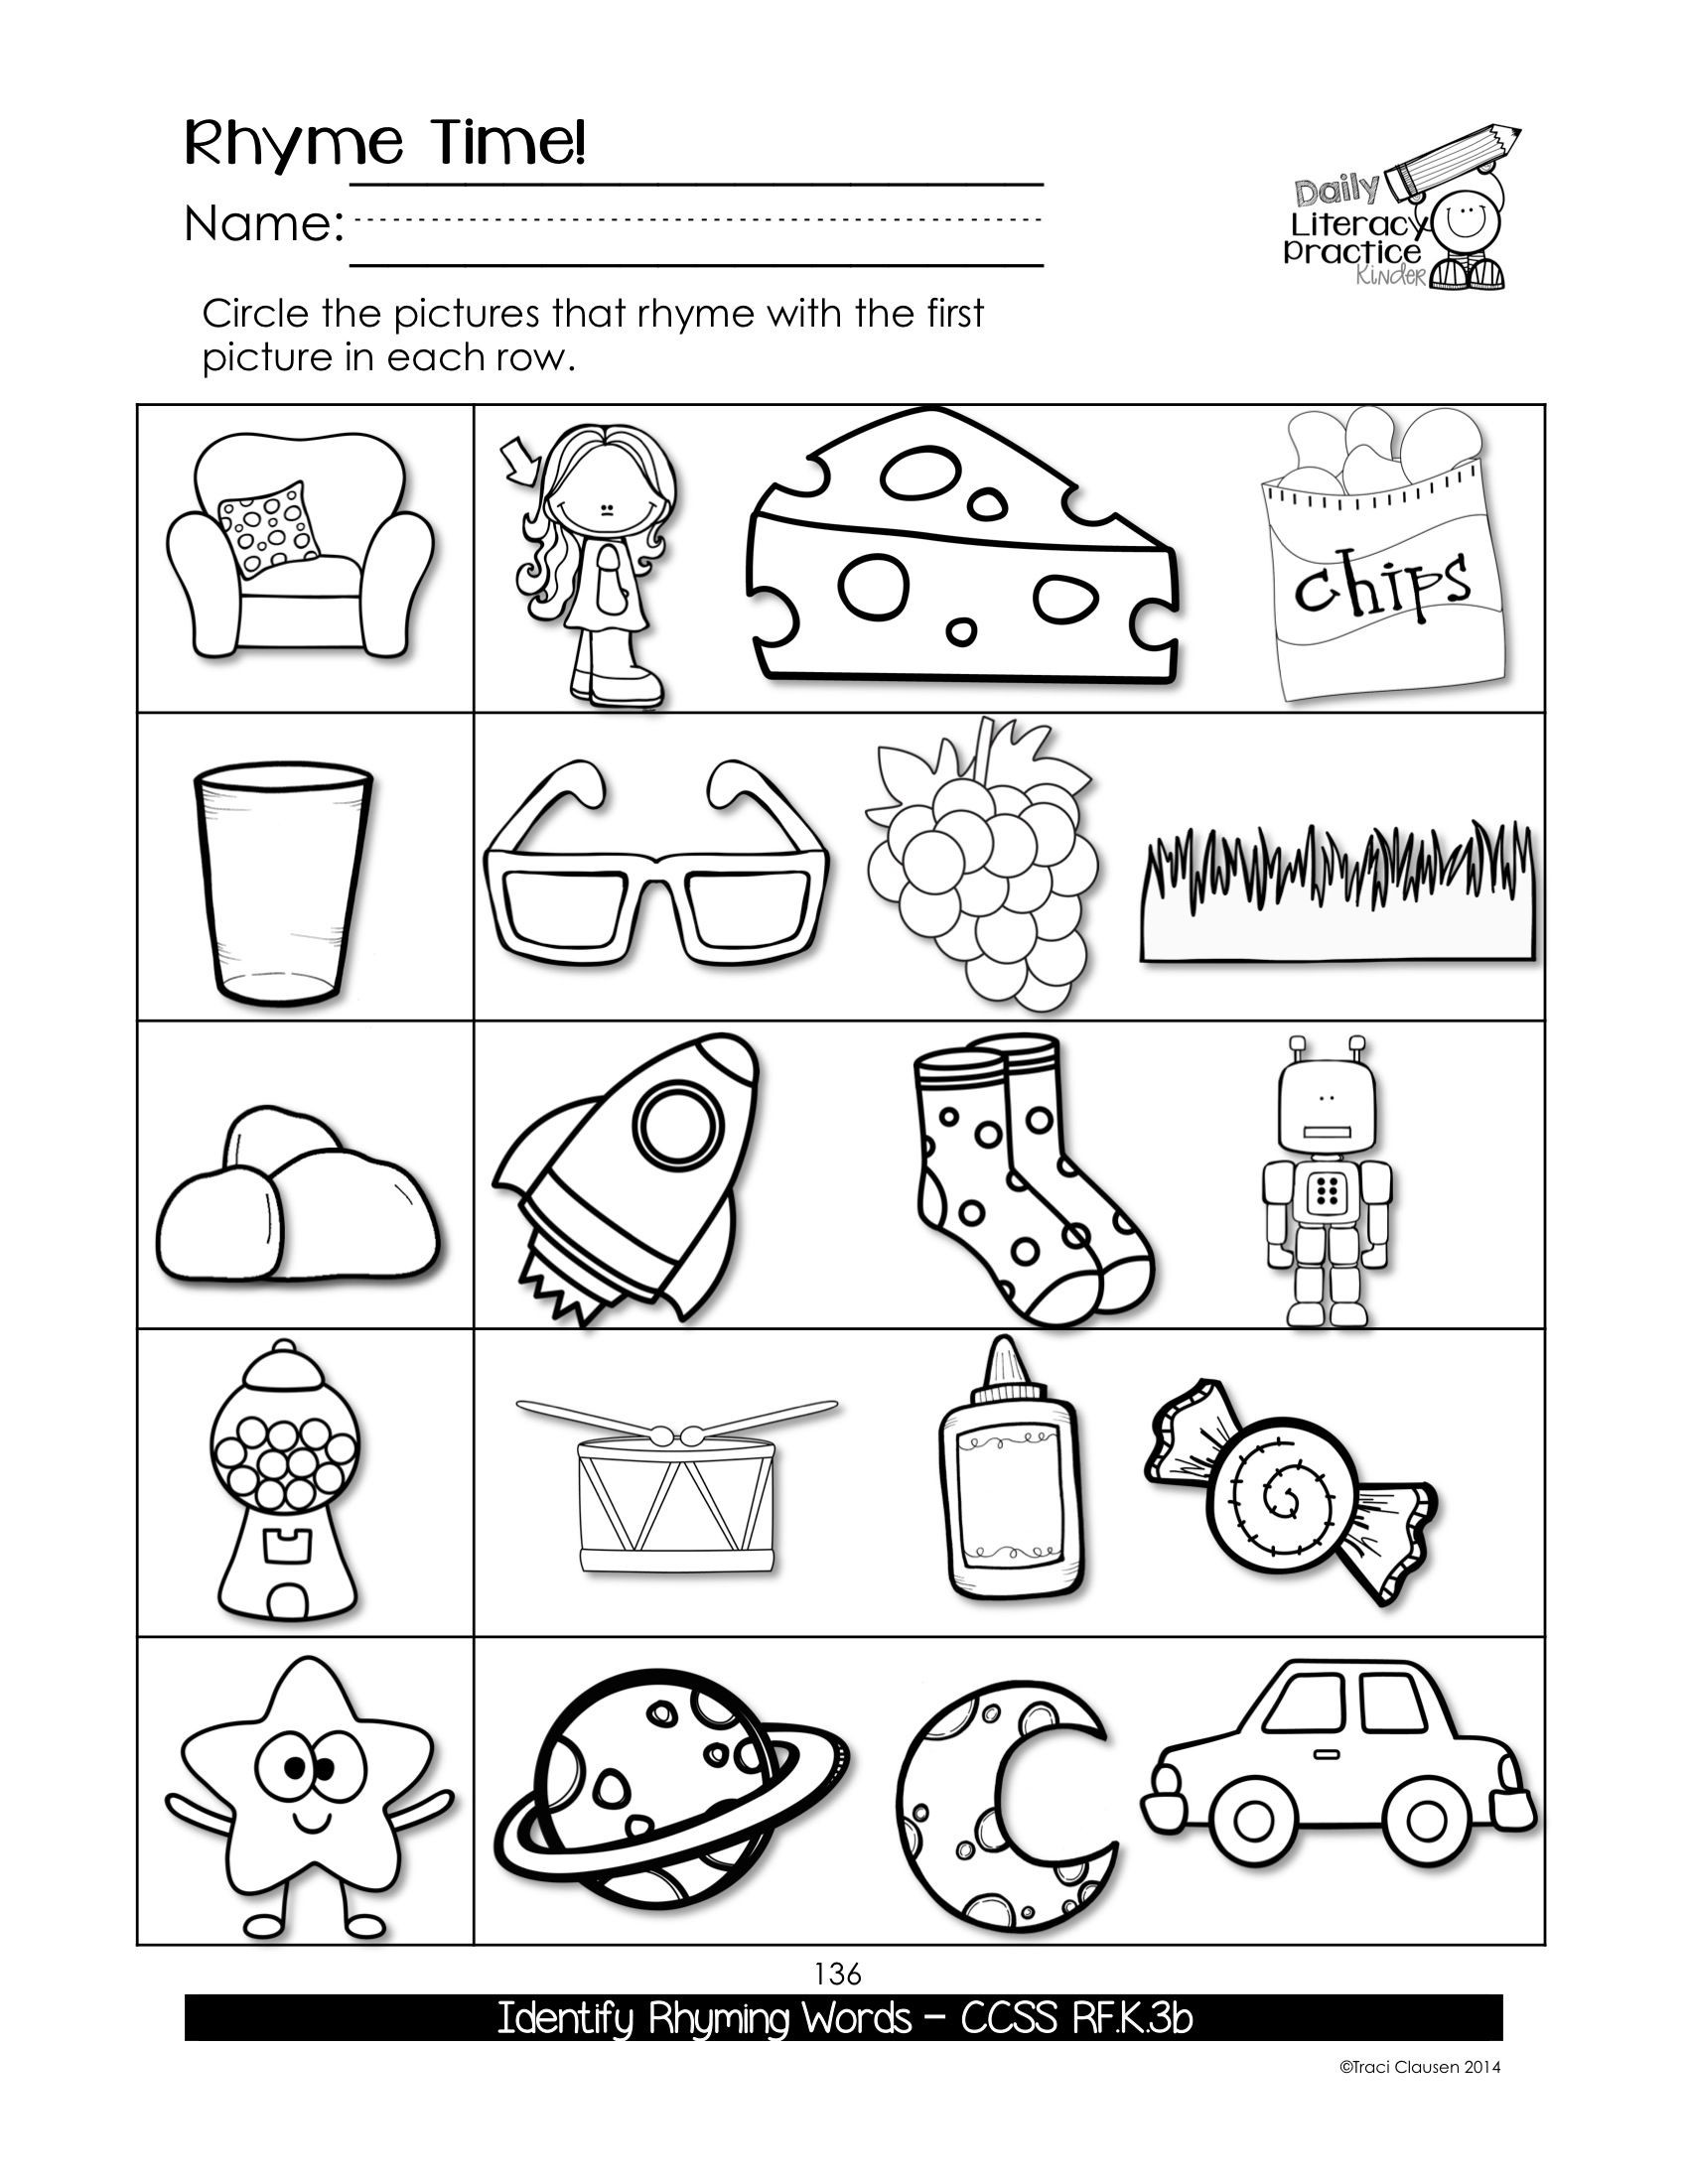 Rhyming Worksheets for Preschoolers Worksheets Numbers 1 to 100 Kids Trace Numbers to 20